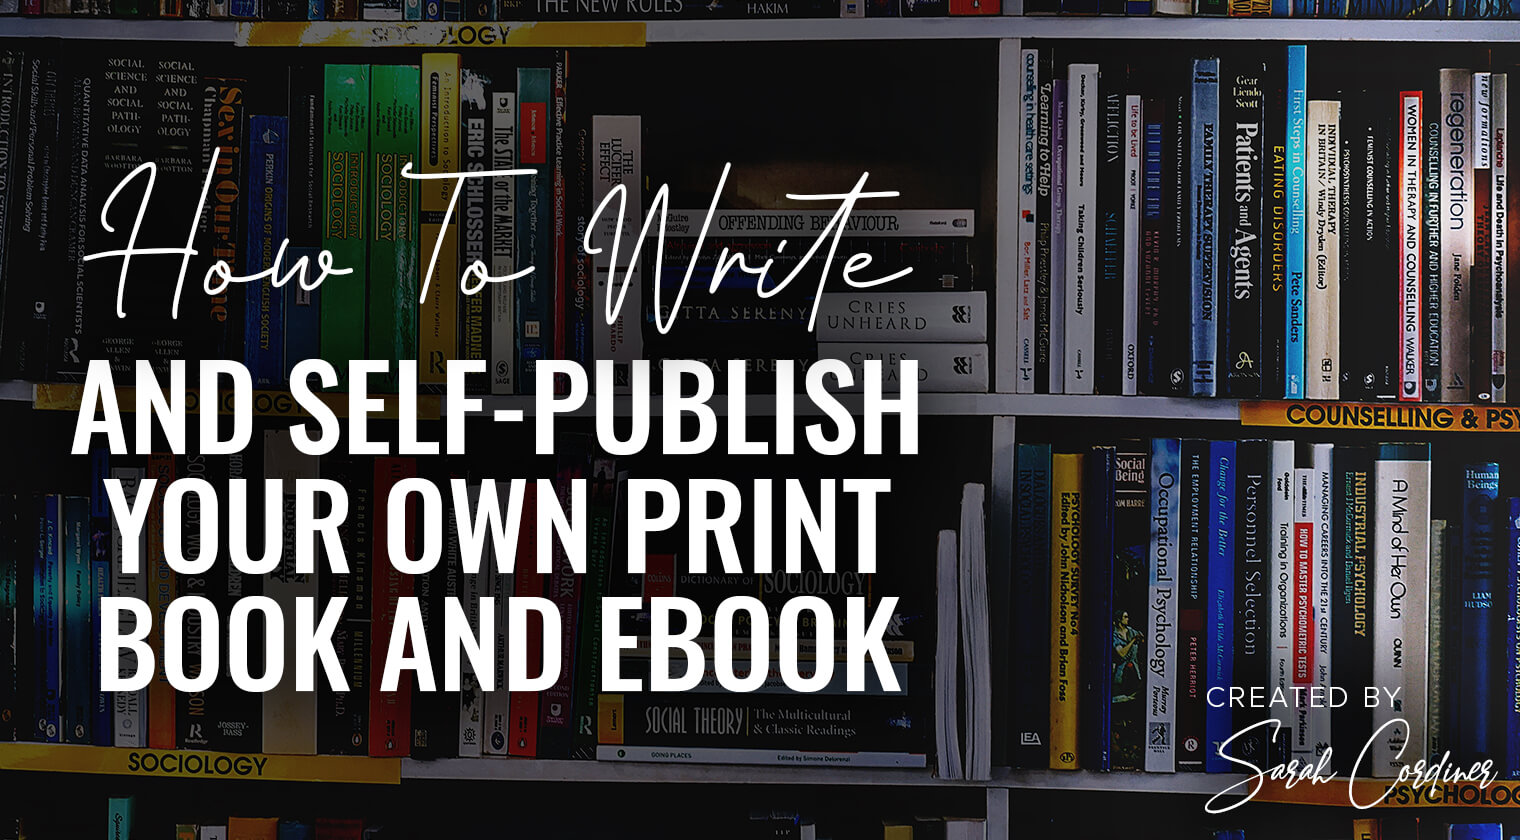 and Self-Publish Your Own Print Book and eBook